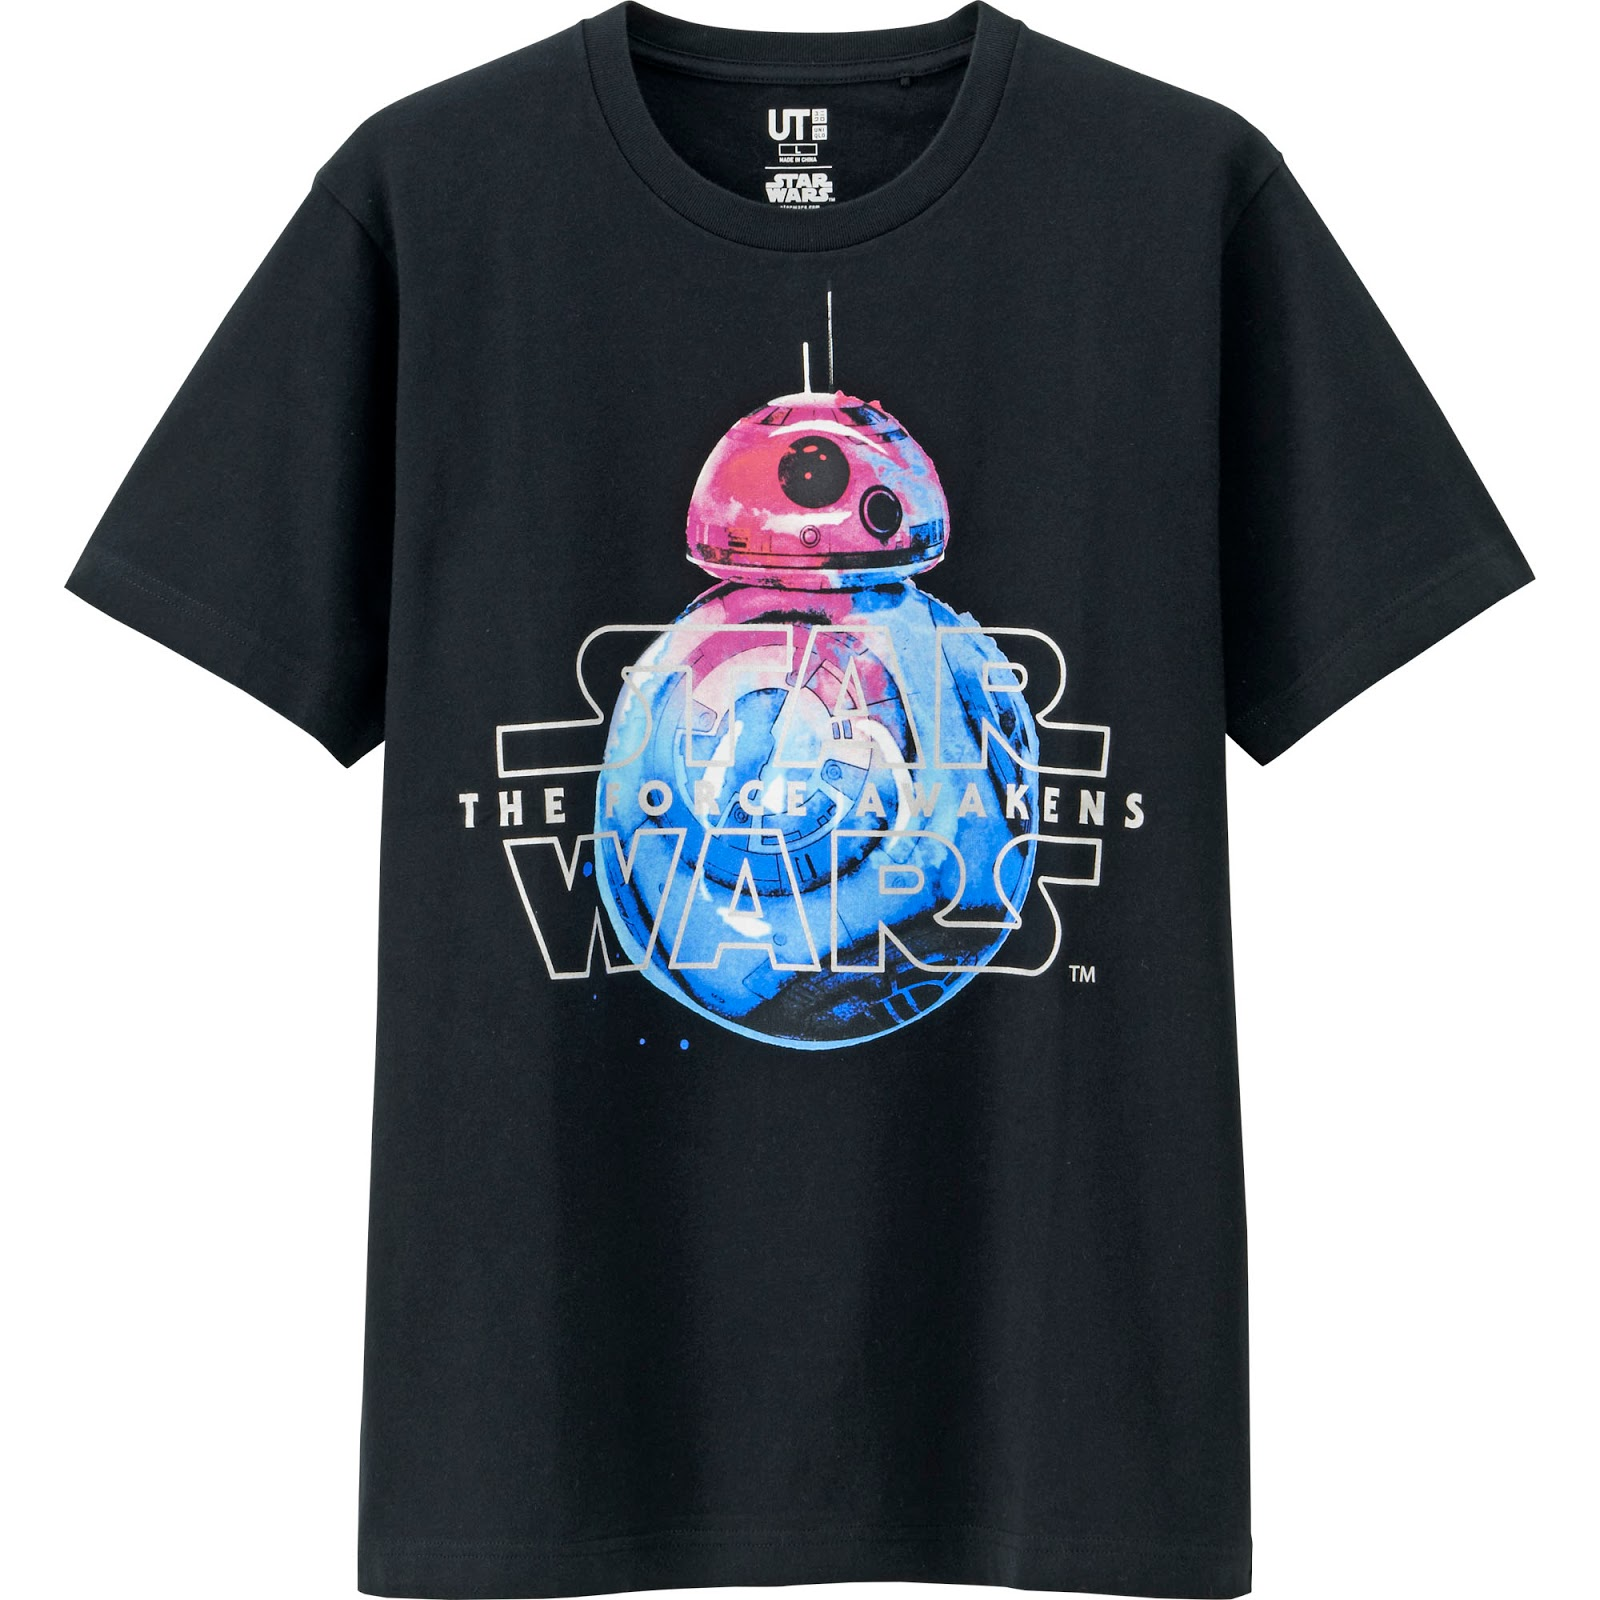 a0af266d Star Wars fans will surely love the new designs of the graphic t-shirts  which are made of high-quality materials. These are best paired with any  UNIQLO ...